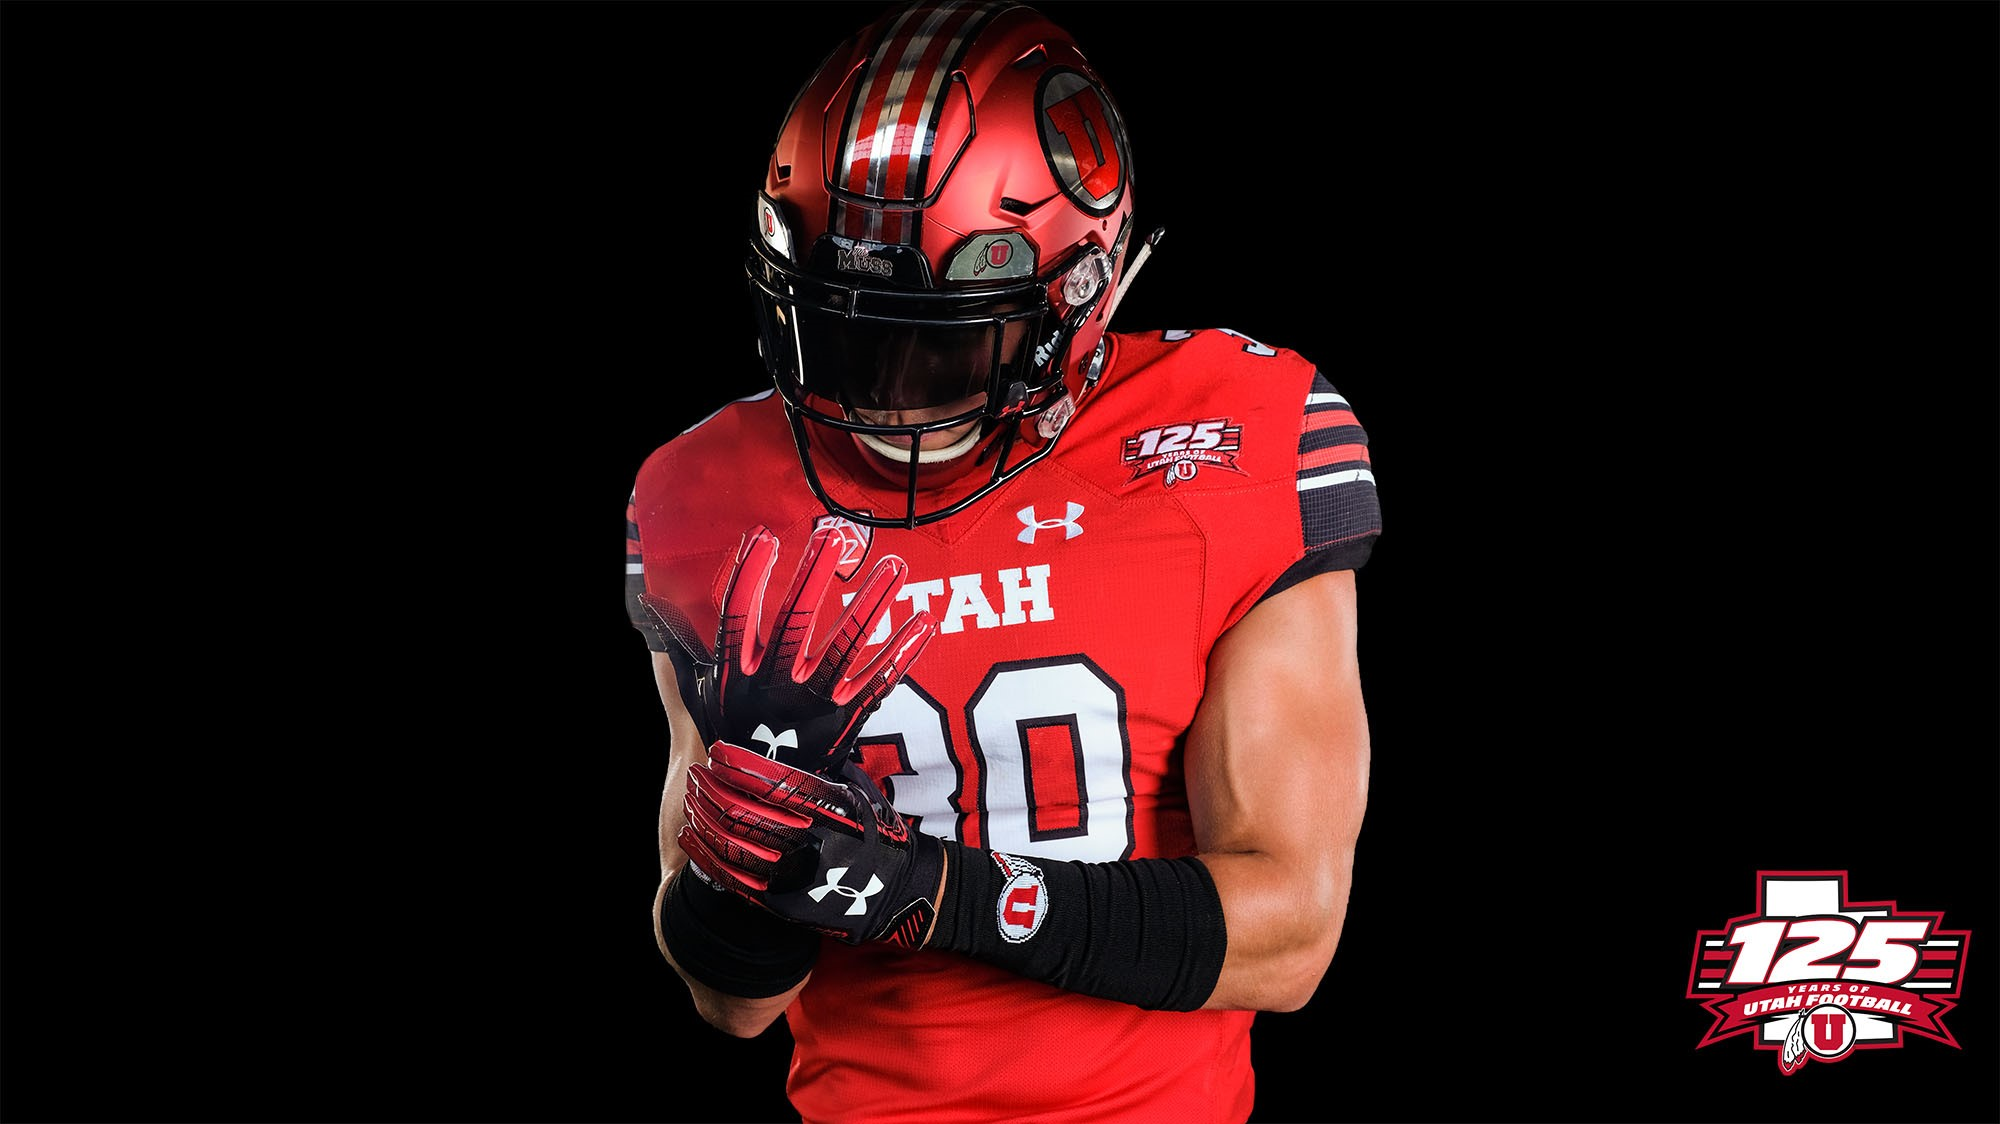 reputable site 52224 23f0e Utes to Celebrate 125 Seasons of Football - University of ...